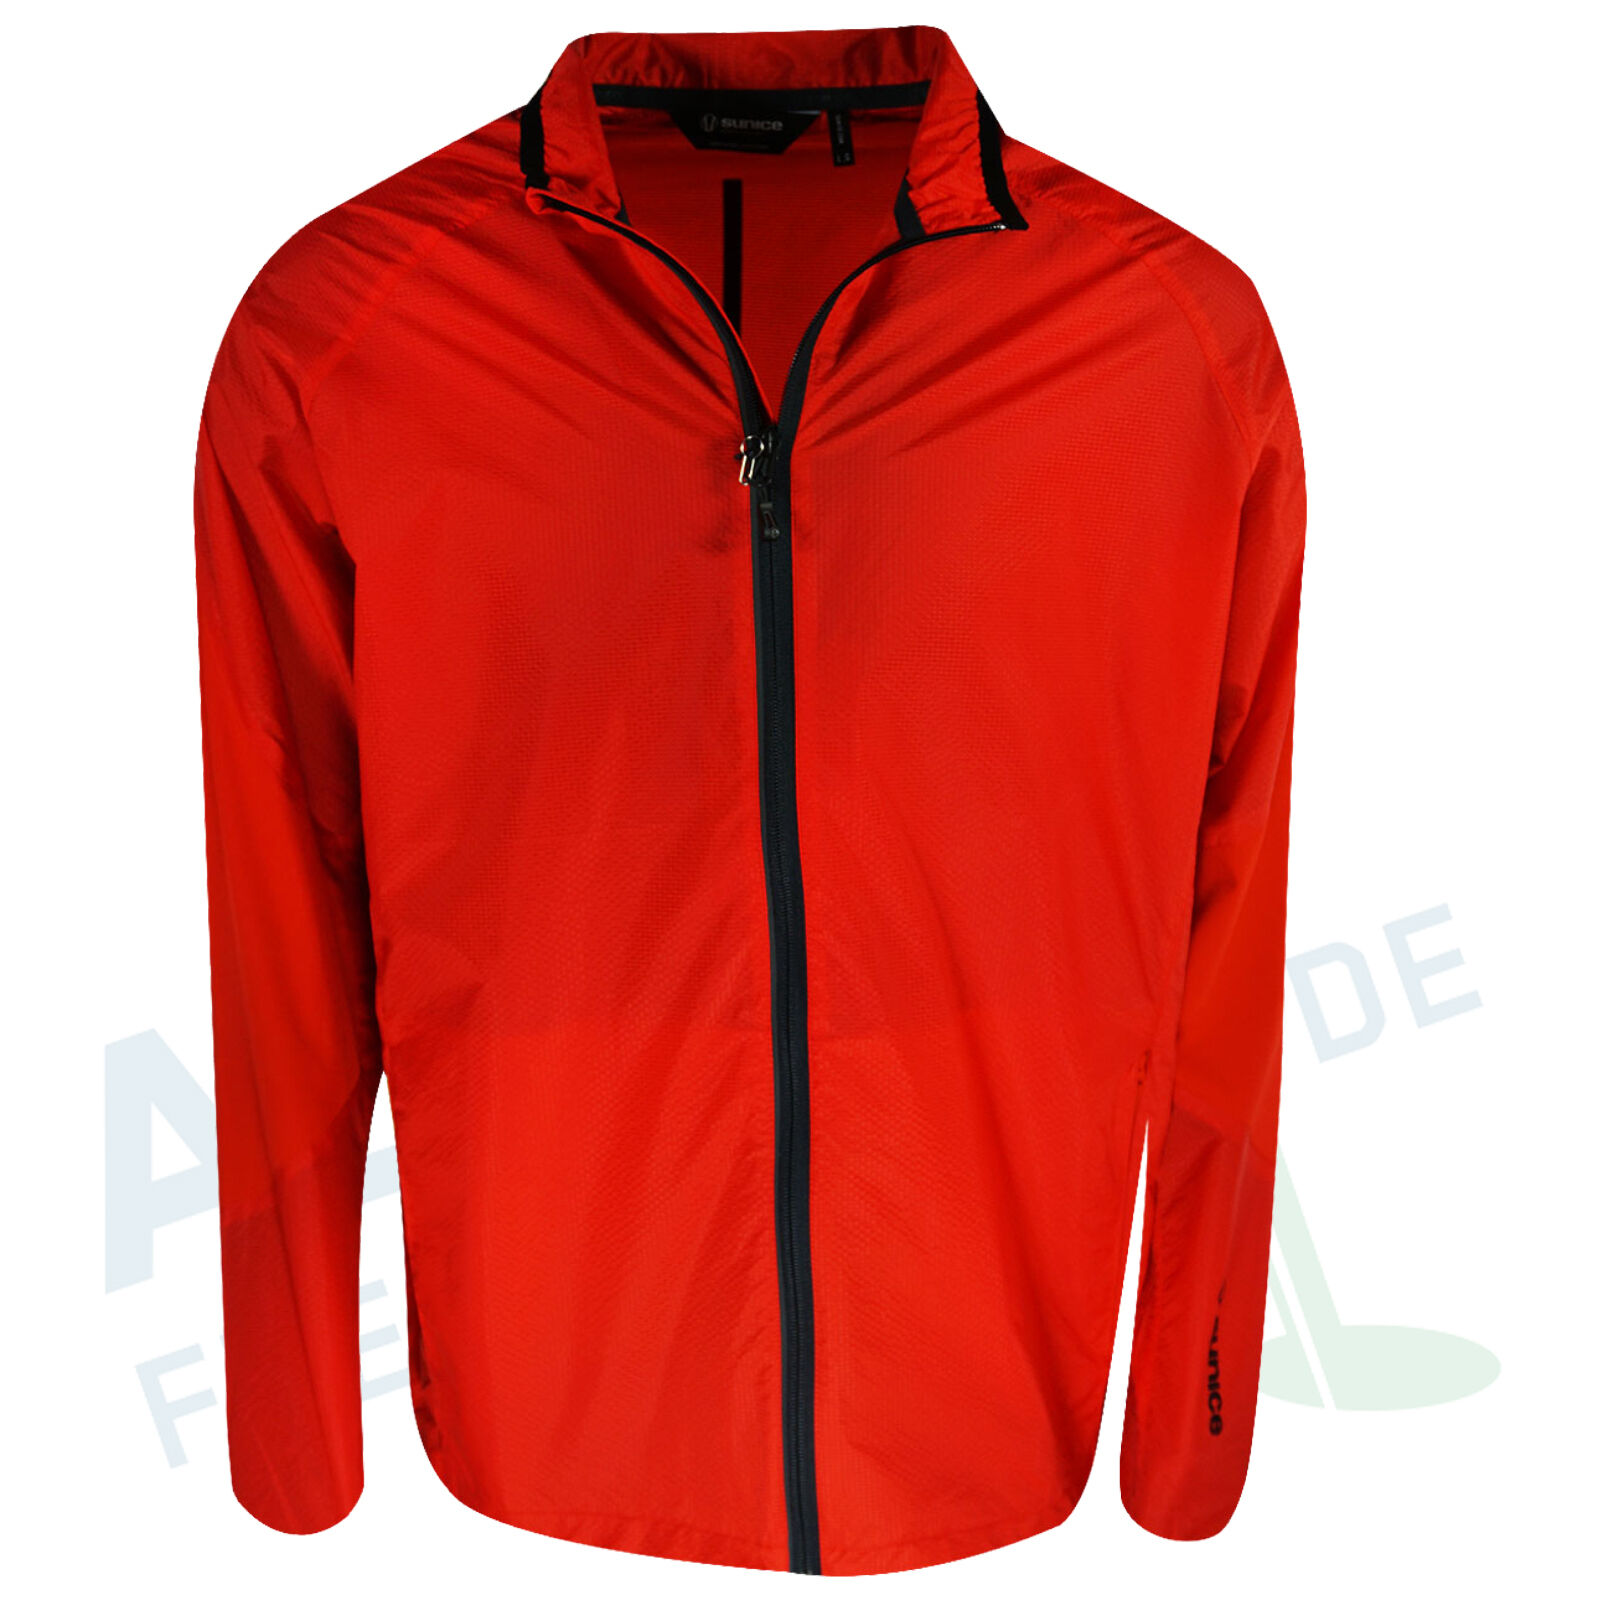 Sunice Windbreaker Salford rot Größe L (Windproof Water Resistant Breathable)